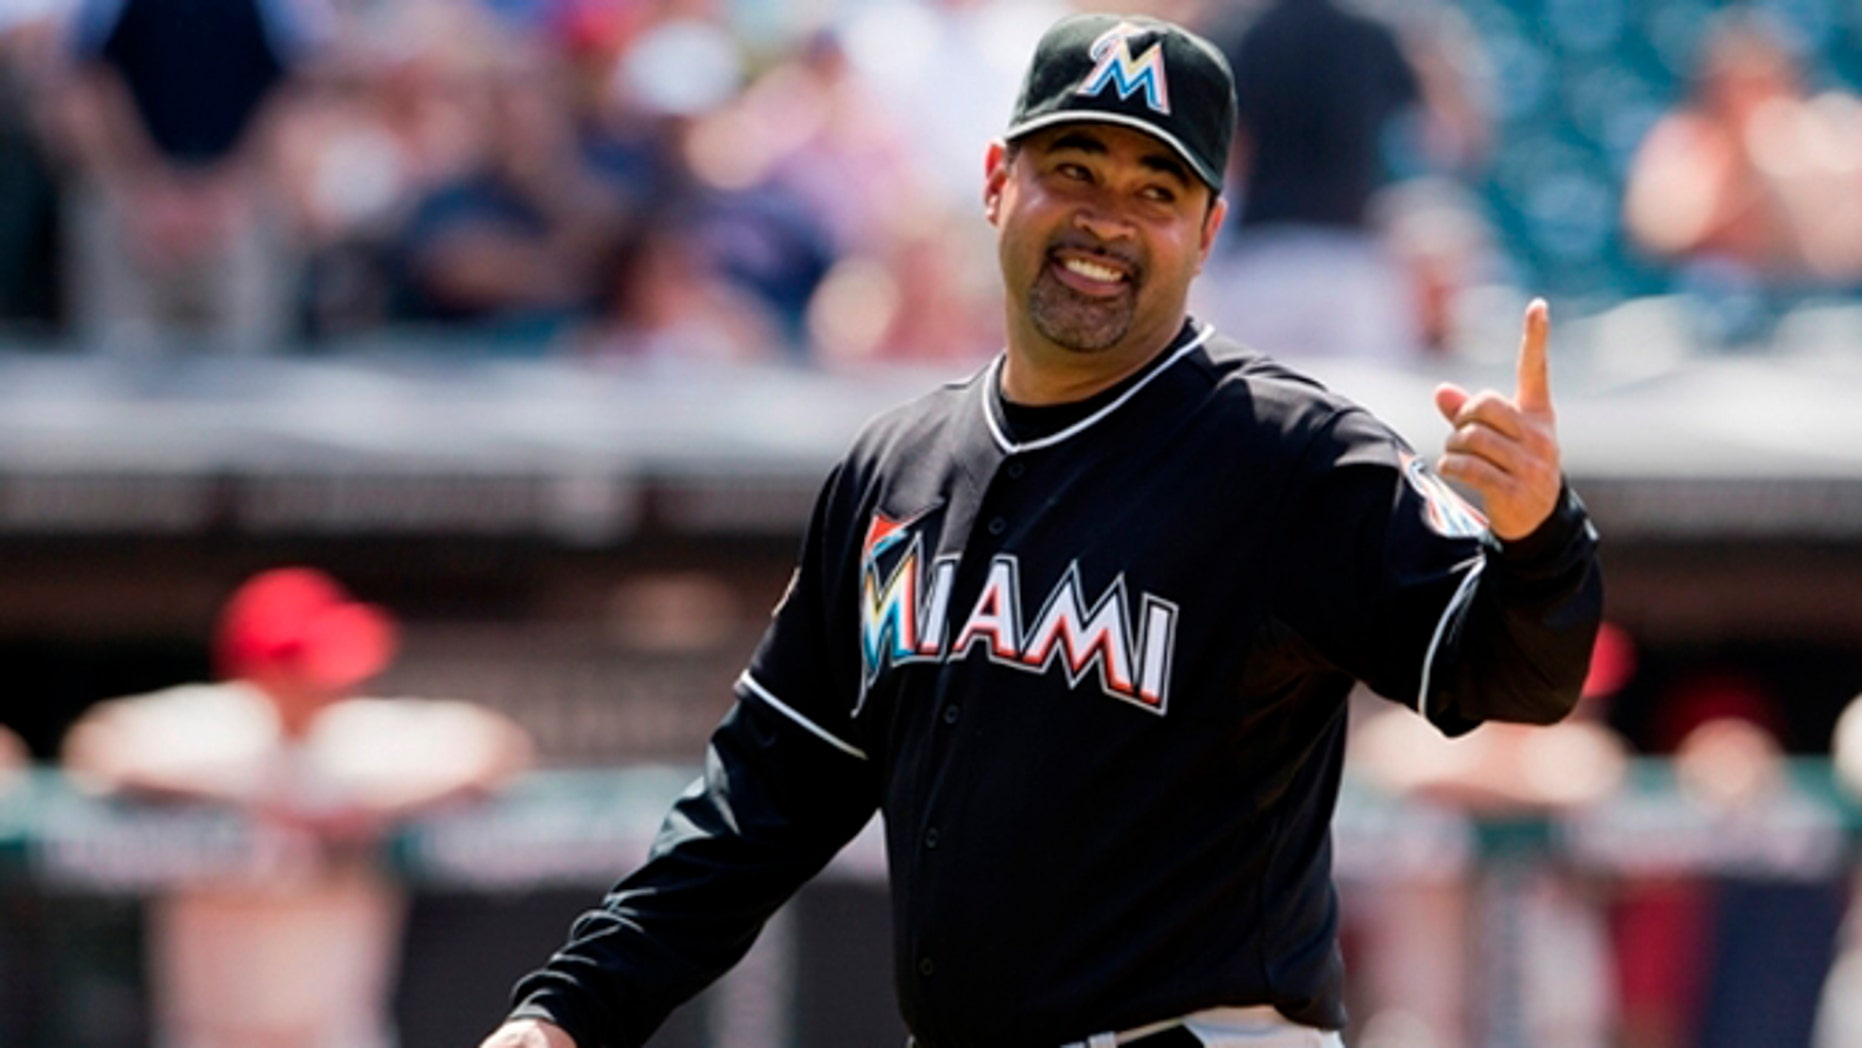 CLEVELAND, OH - MAY 20: Manager Ozzie Guillen #13 of the Miami Marlins gestures to first base after a pitching change during the eighth inning against the Cleveland Indians at Progressive Field on May 20, 2012 in Cleveland, Ohio. The Marlins defeated the Indians 5-3. (Photo by Jason Miller/Getty Images)  *** Local Caption *** Ozzie Guillen